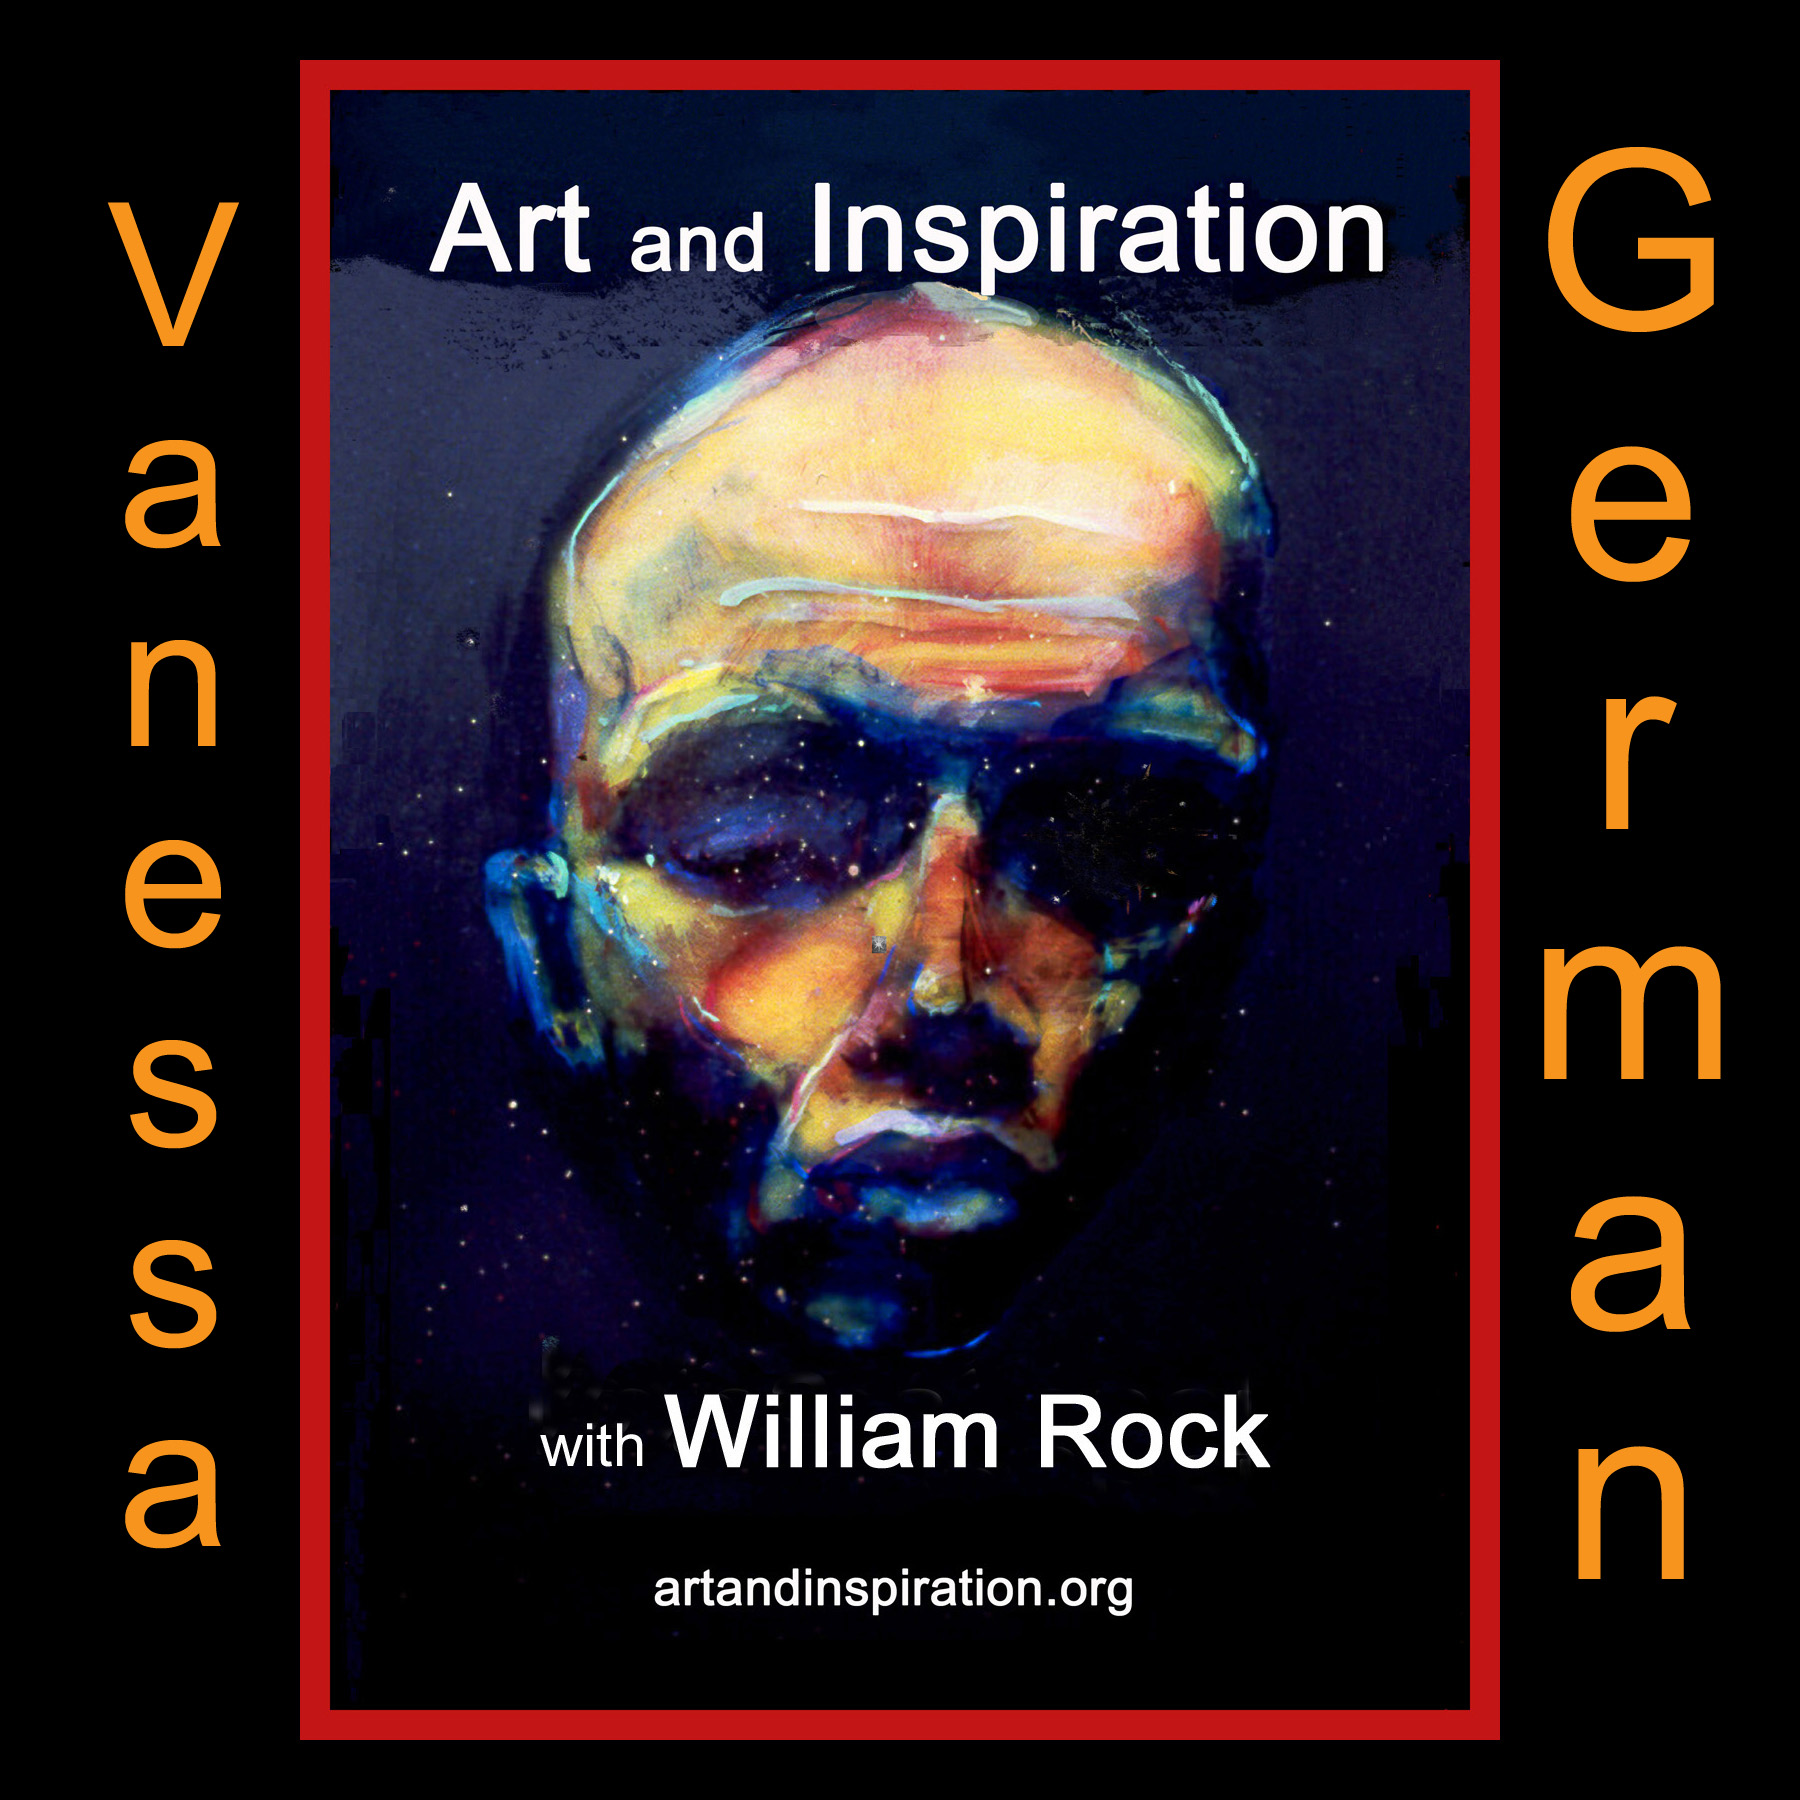 Vanessa German on Art and Inspiration with William Rock